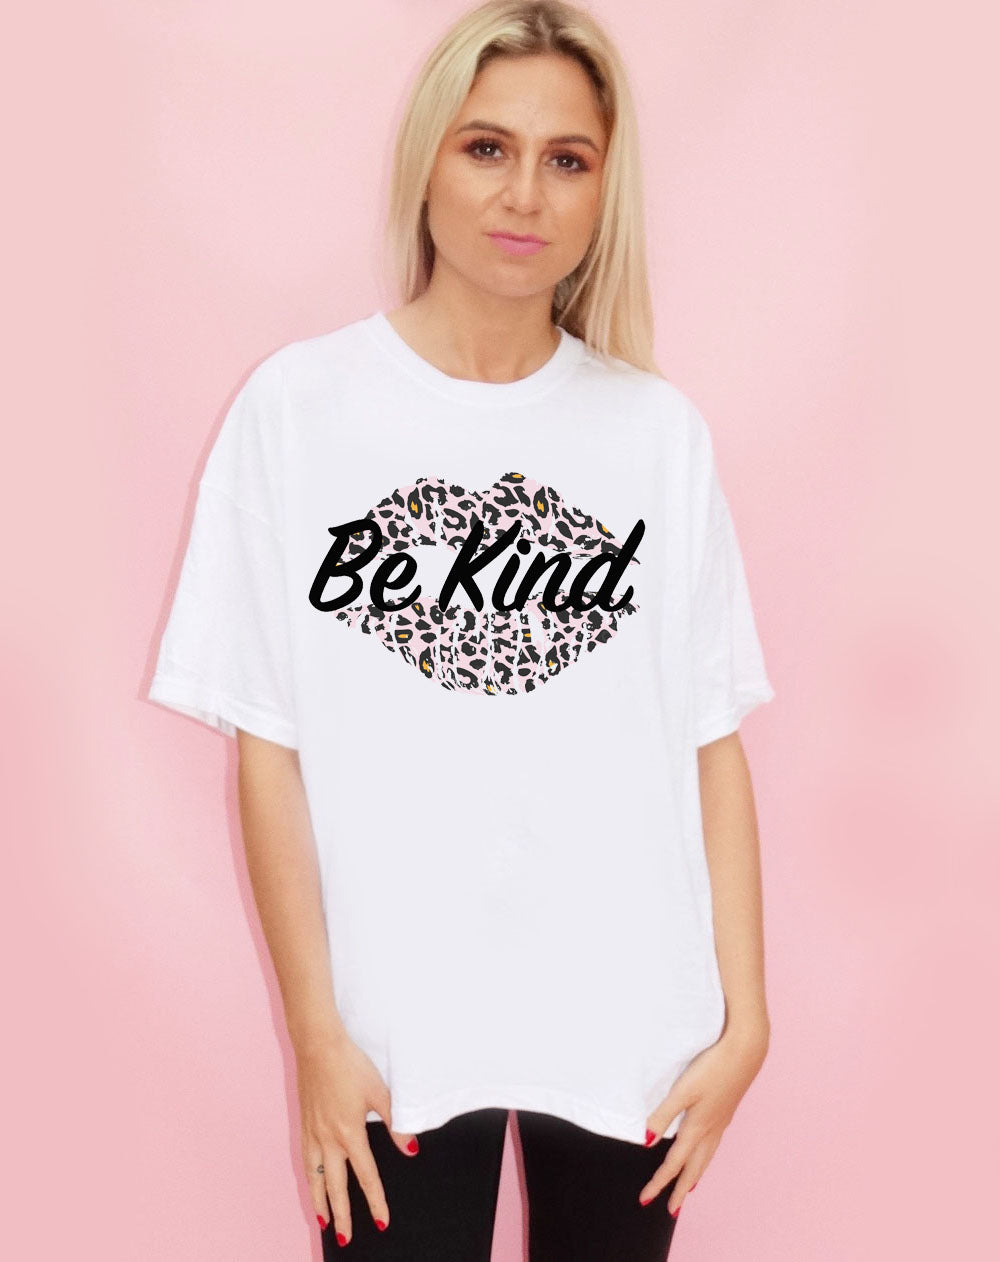 White Tshirt with Be Kind Slogan & Pink/Orange Leopard Kiss